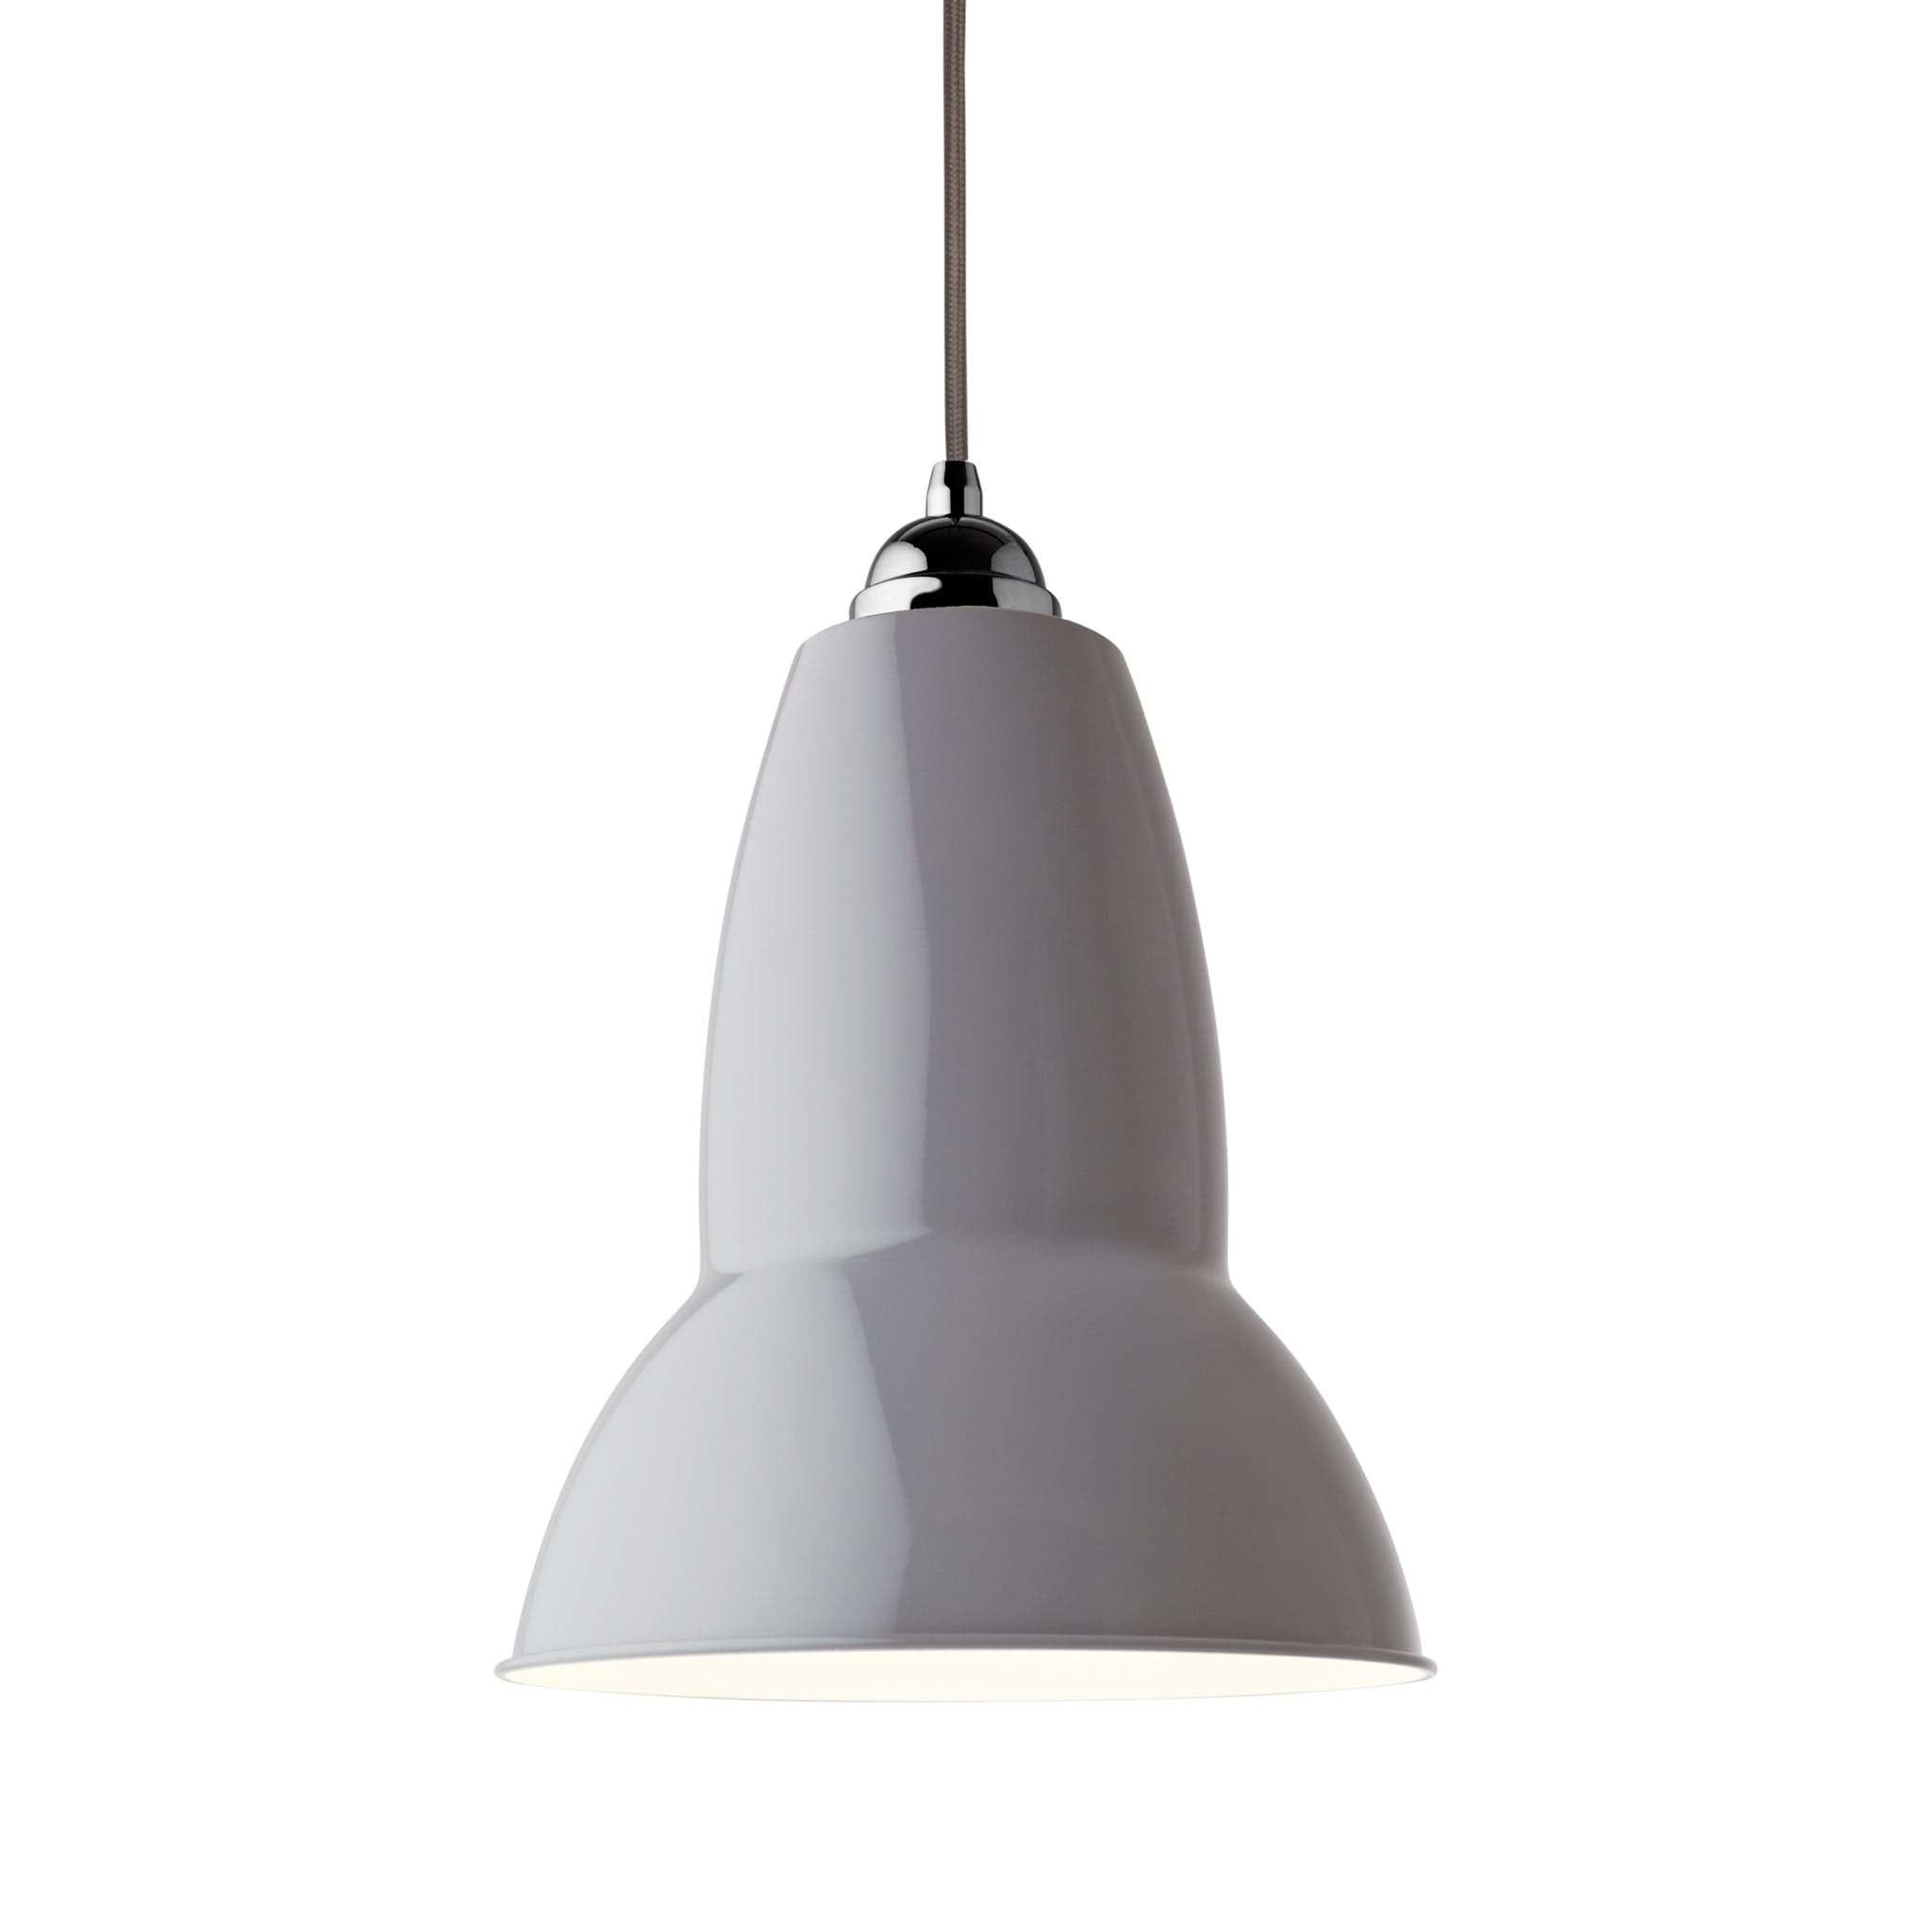 Original 1227 Midi Pendant by Anglepoise